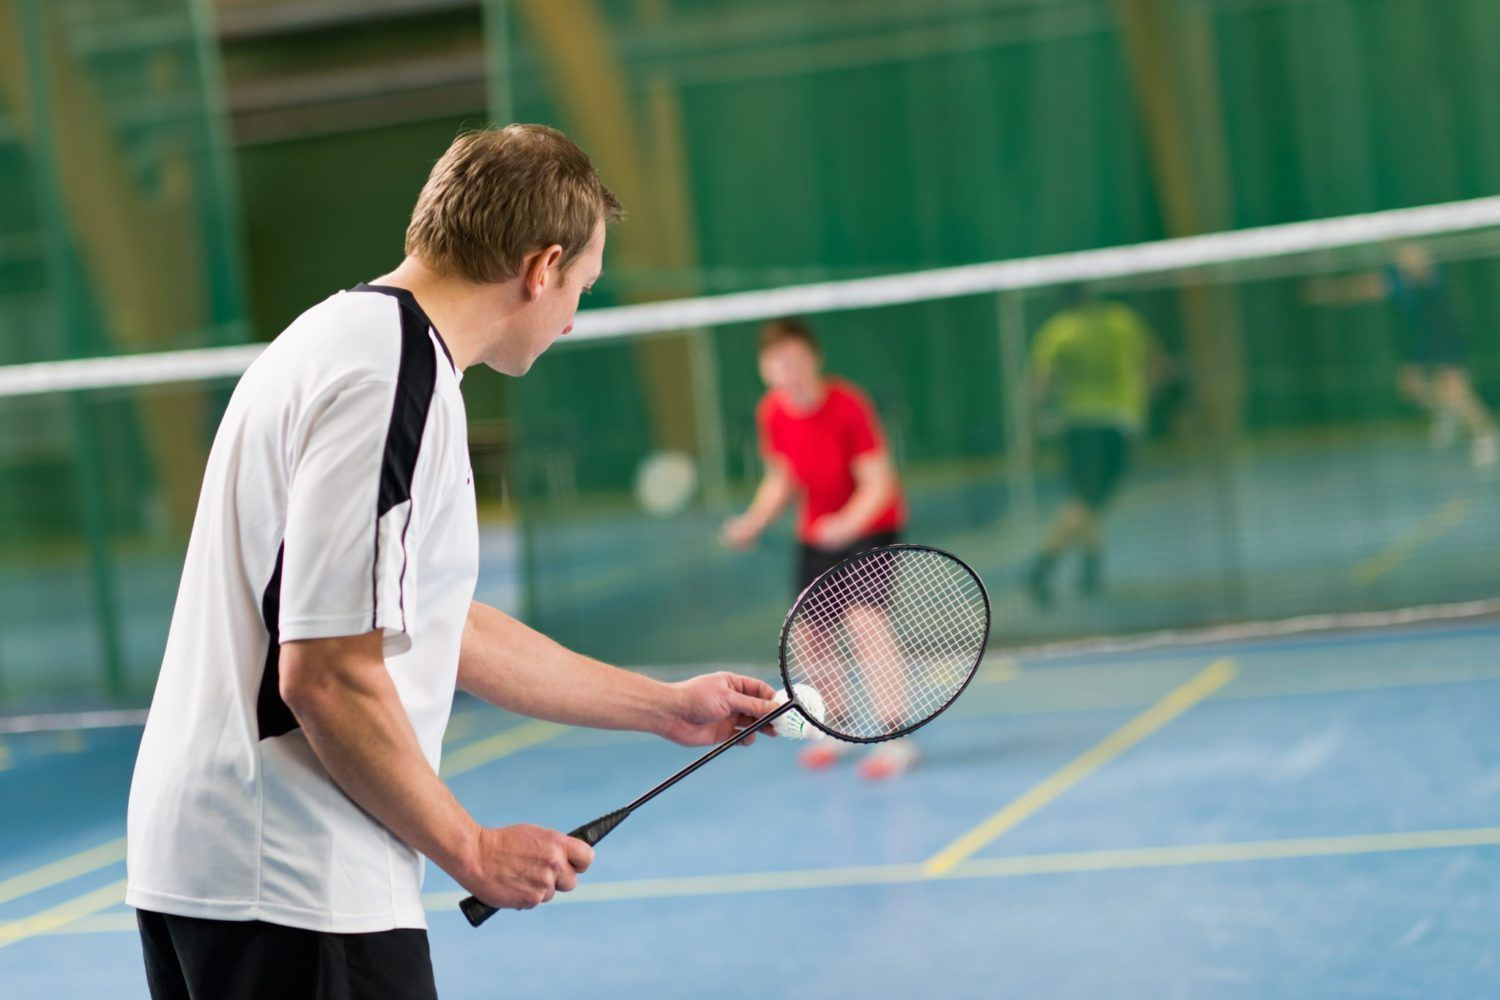 Learn how to play Badminton with our Badminton game